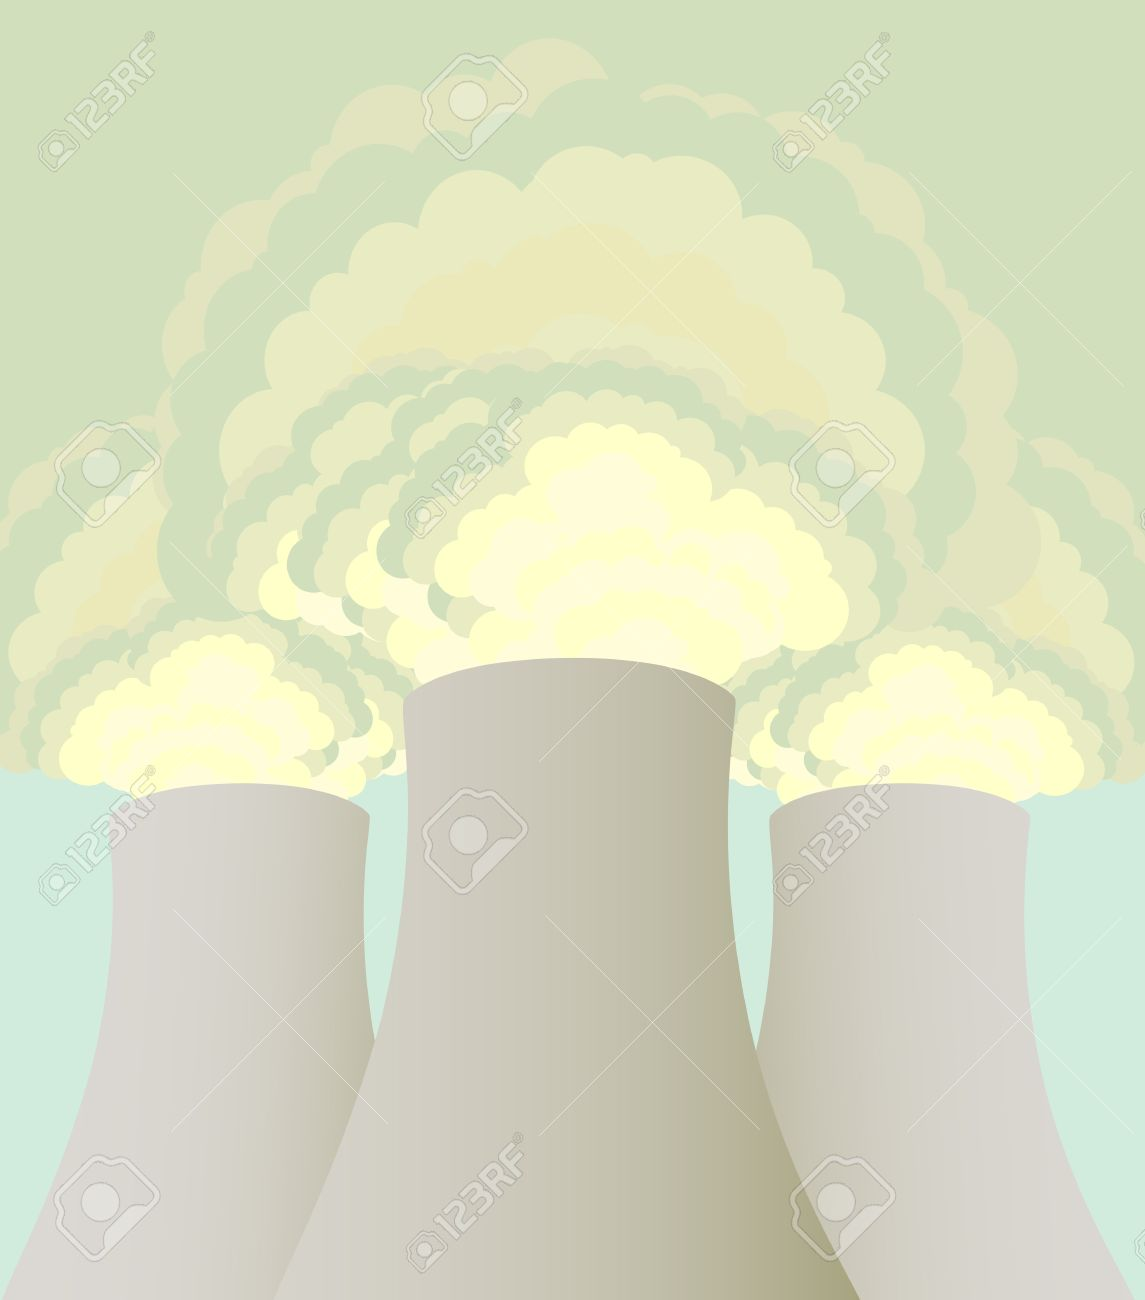 Nuclear Power Station Cooling Towers Vector Background Royalty.